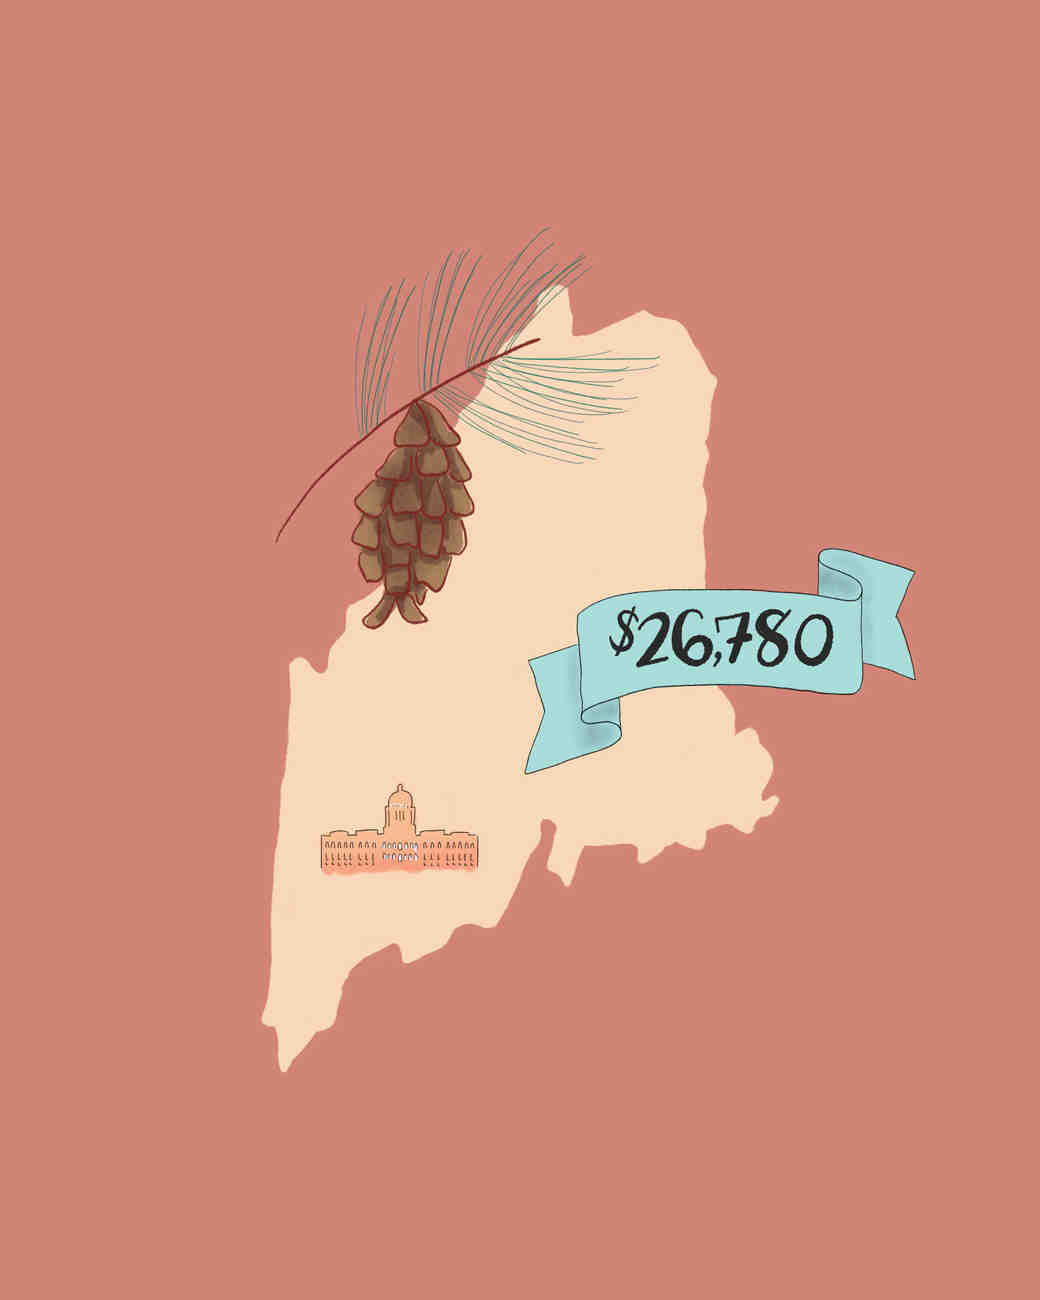 state wedding costs illustration maine